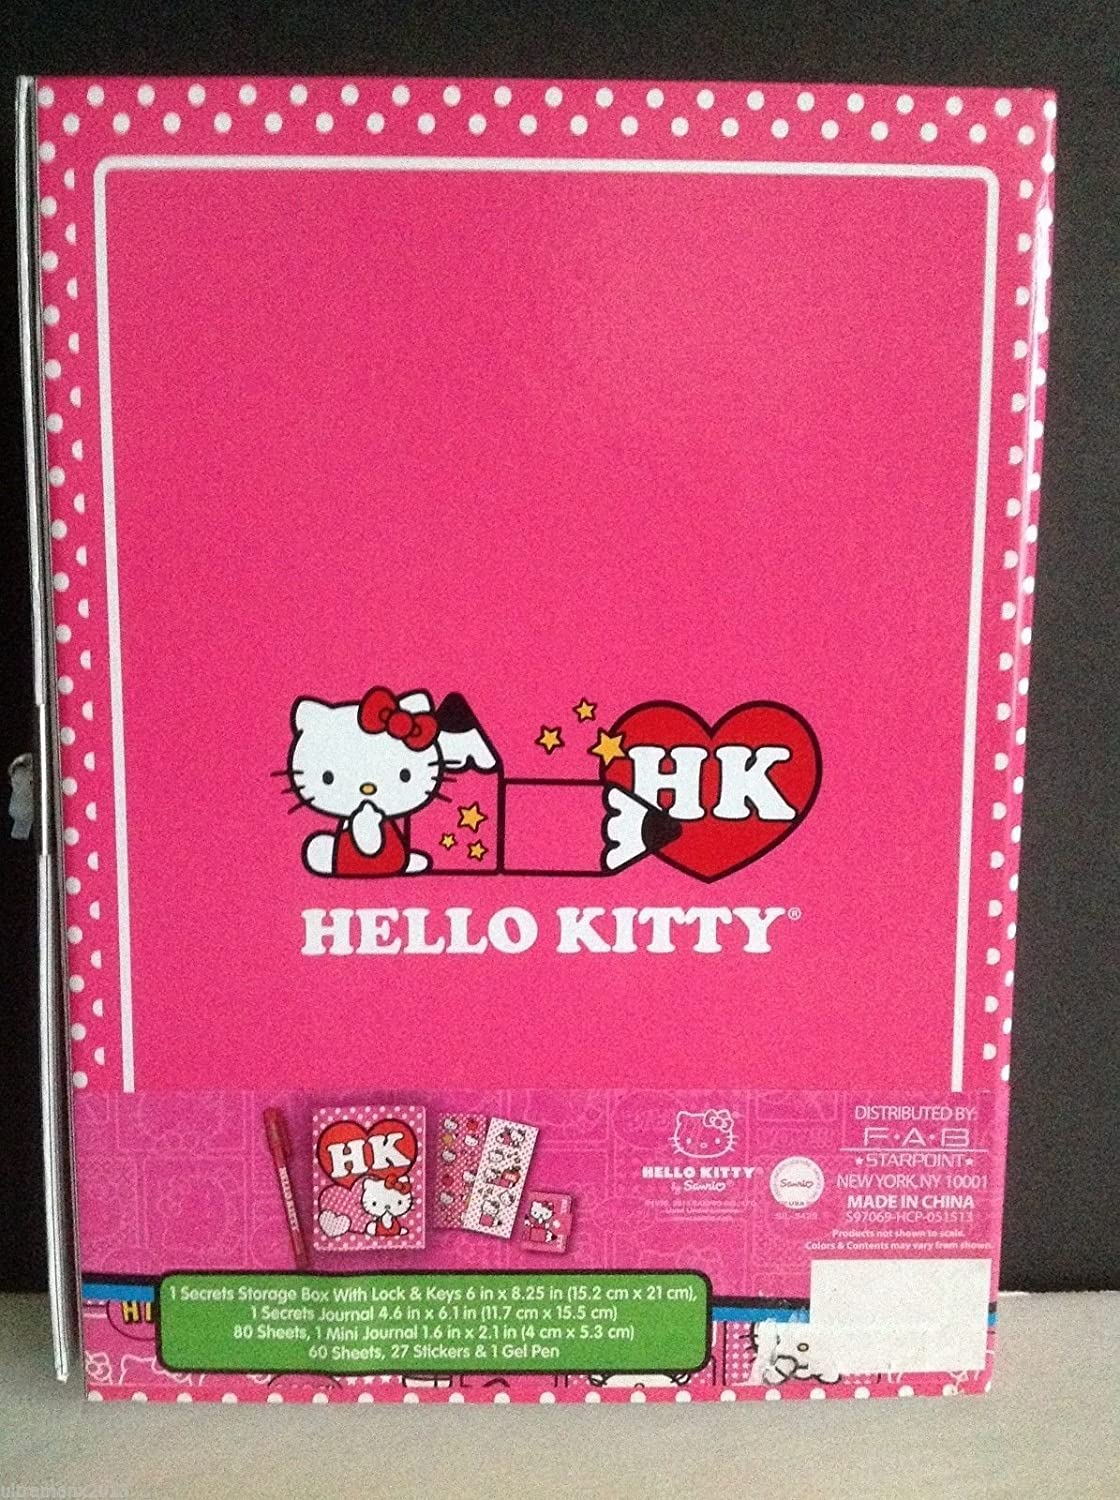 Hello Kitty Journal New for Sales 60 sheets with Gel Pen